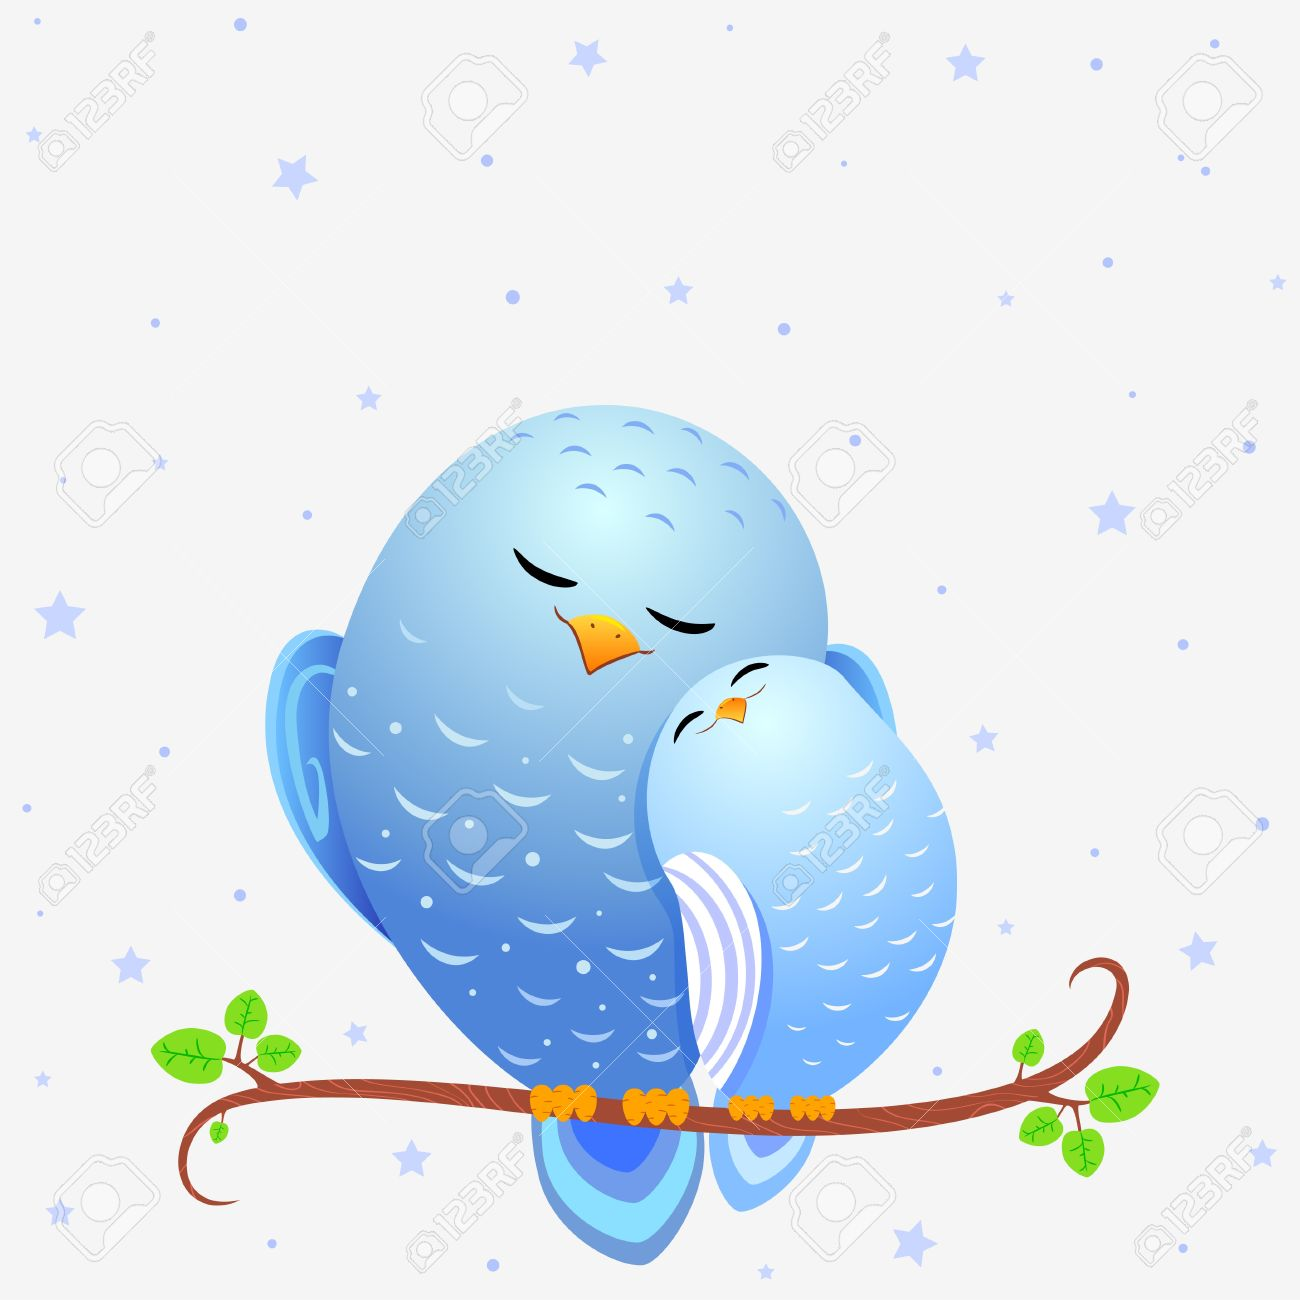 Bird clipart mother and baby Cute birds clipart baby cute